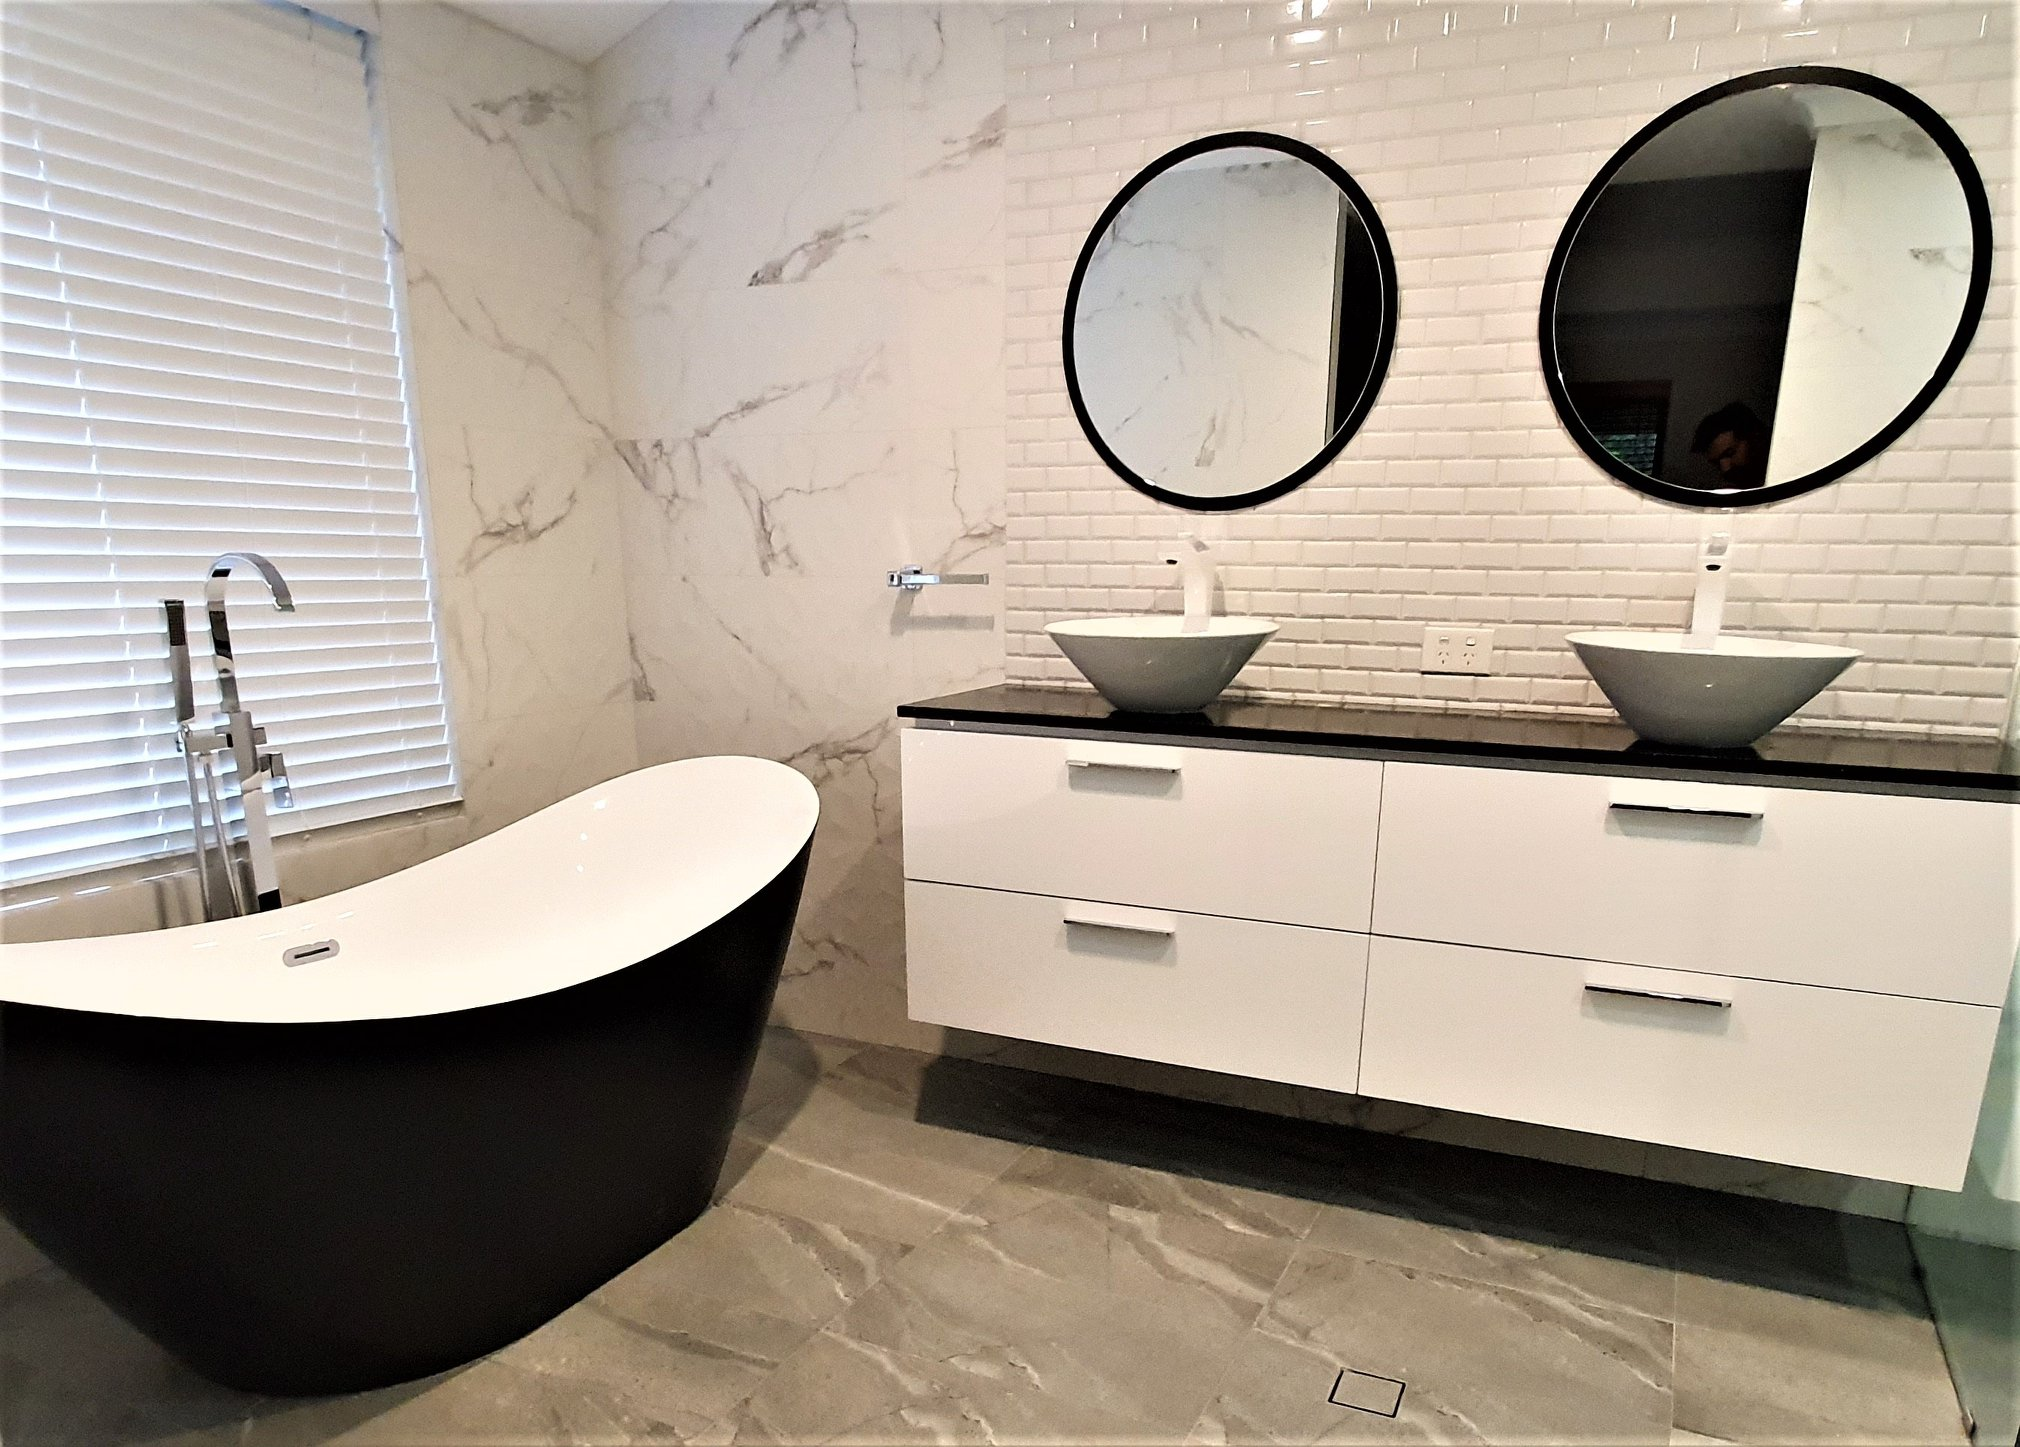 Renovating a Big Bathroom? Here's How to Design It. 2